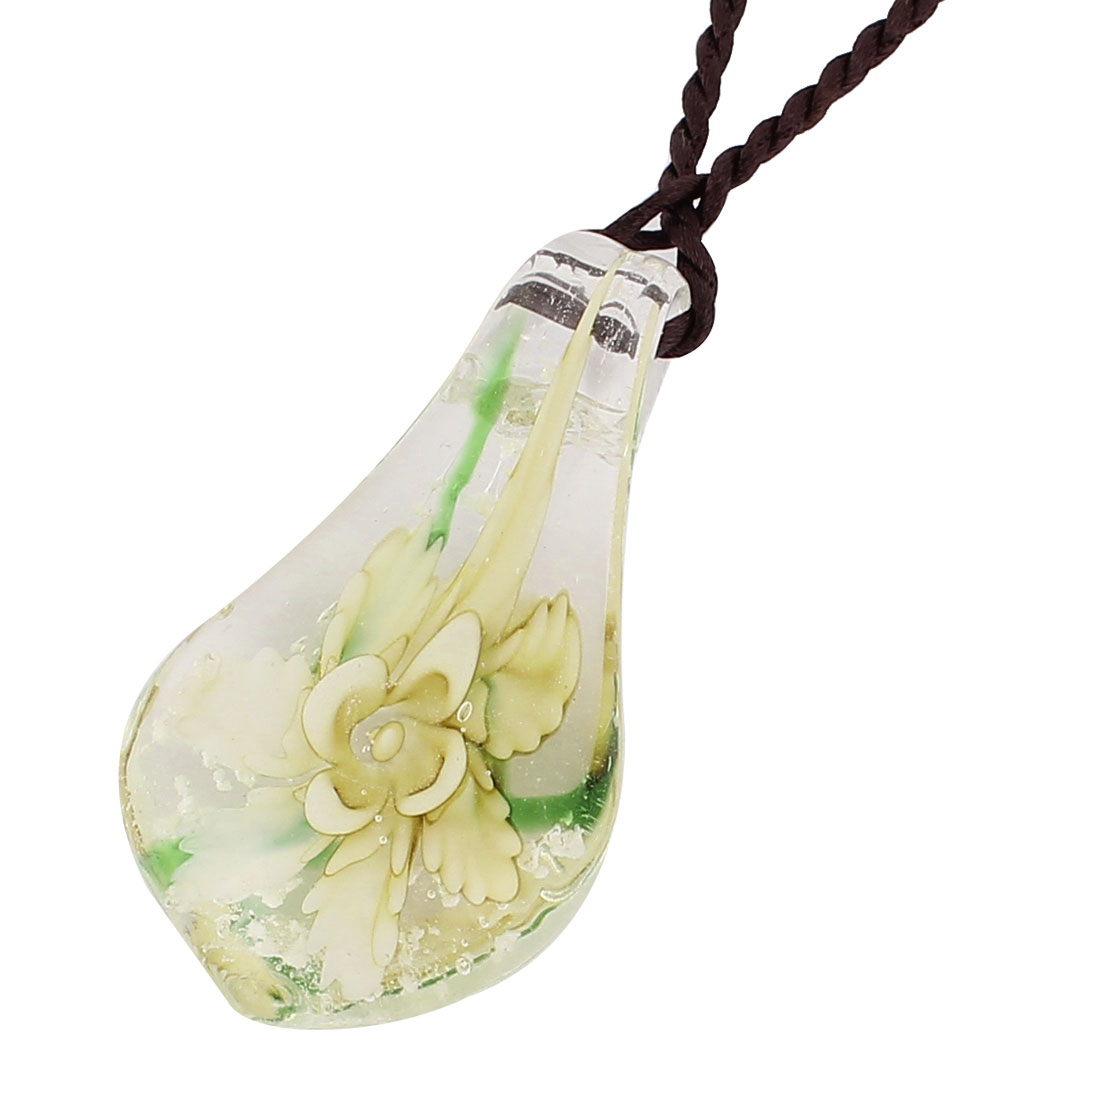 Nylon String Glass Pressed Floral Pendant Necklace Neckwear Clear Beige